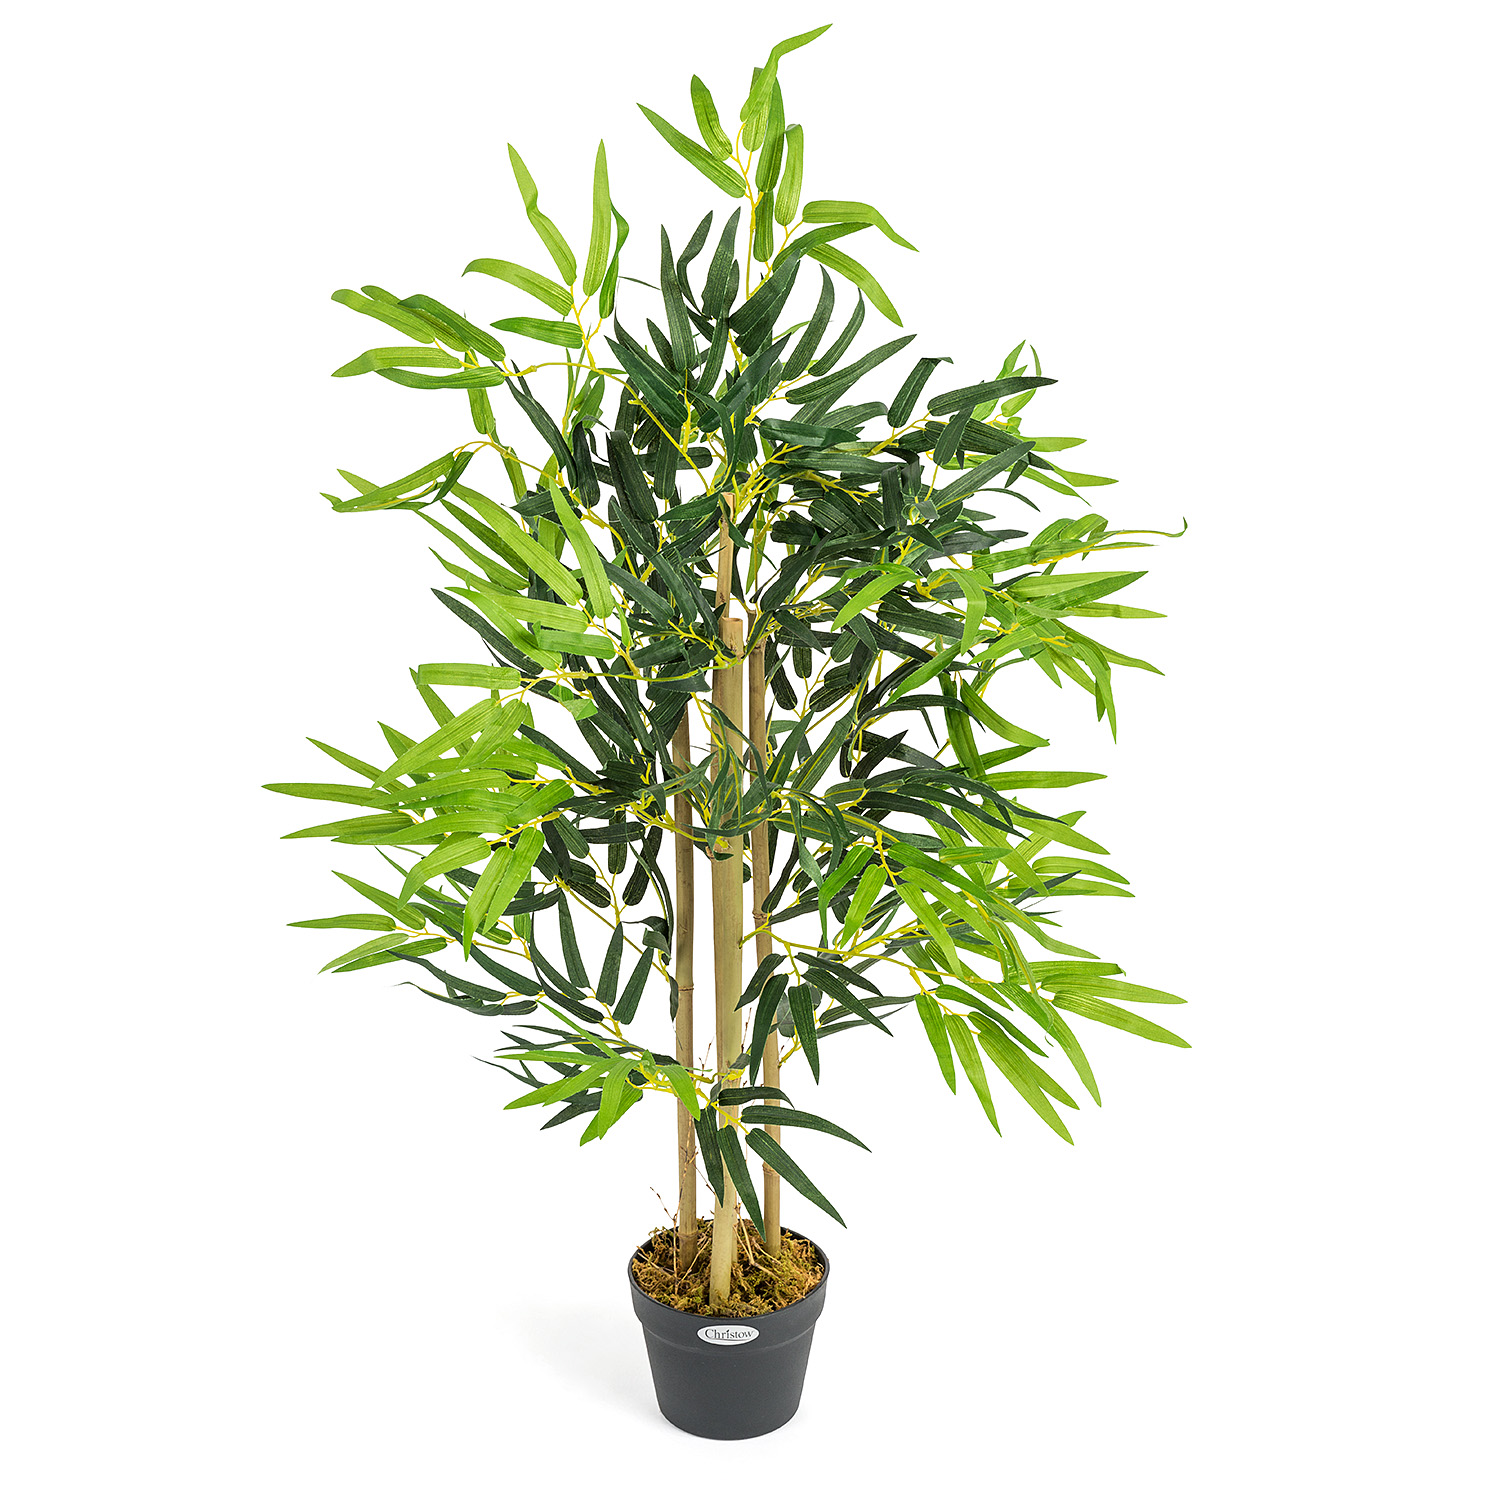 Image of Artificial Bamboo Plant - 3ft